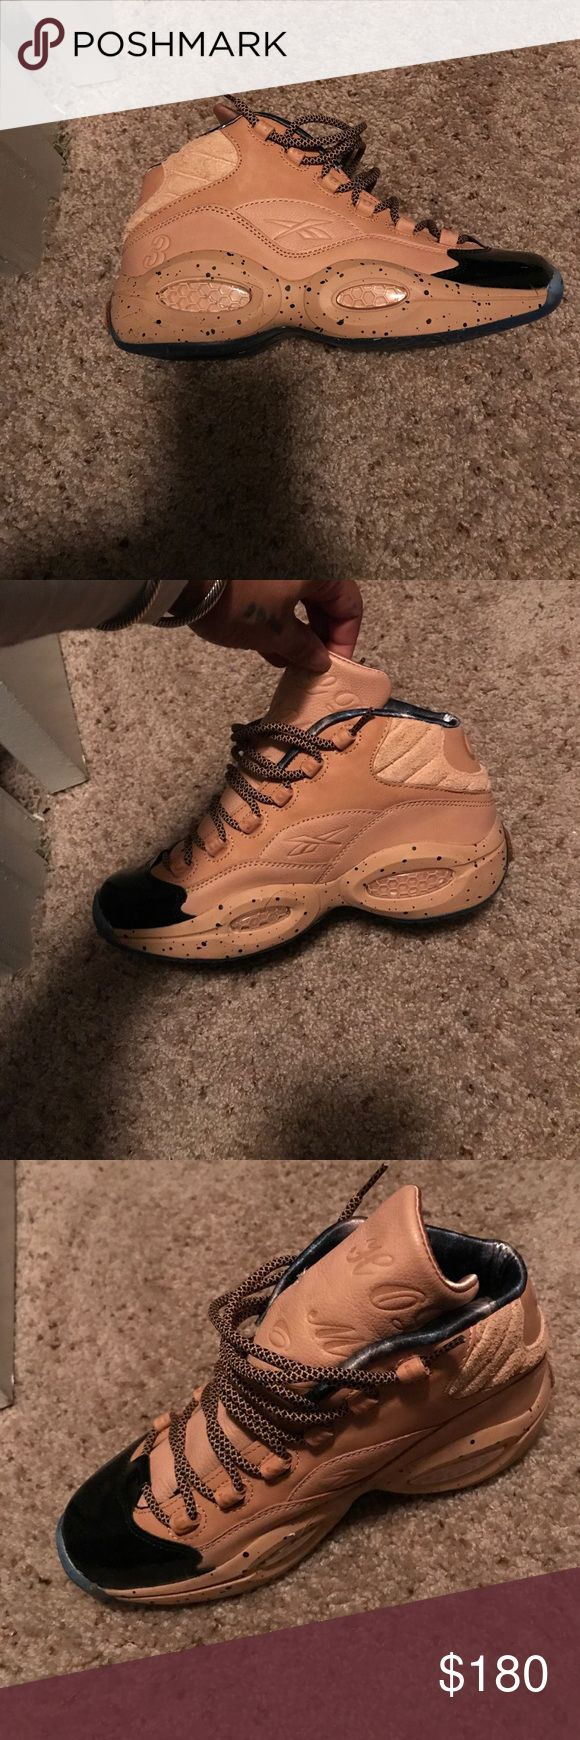 Price reduced Melody Eshani Reebok like brand new Try to find these u can't ....only worn a few times .... Comes in original box 📦 Reebok Shoes Sneakers